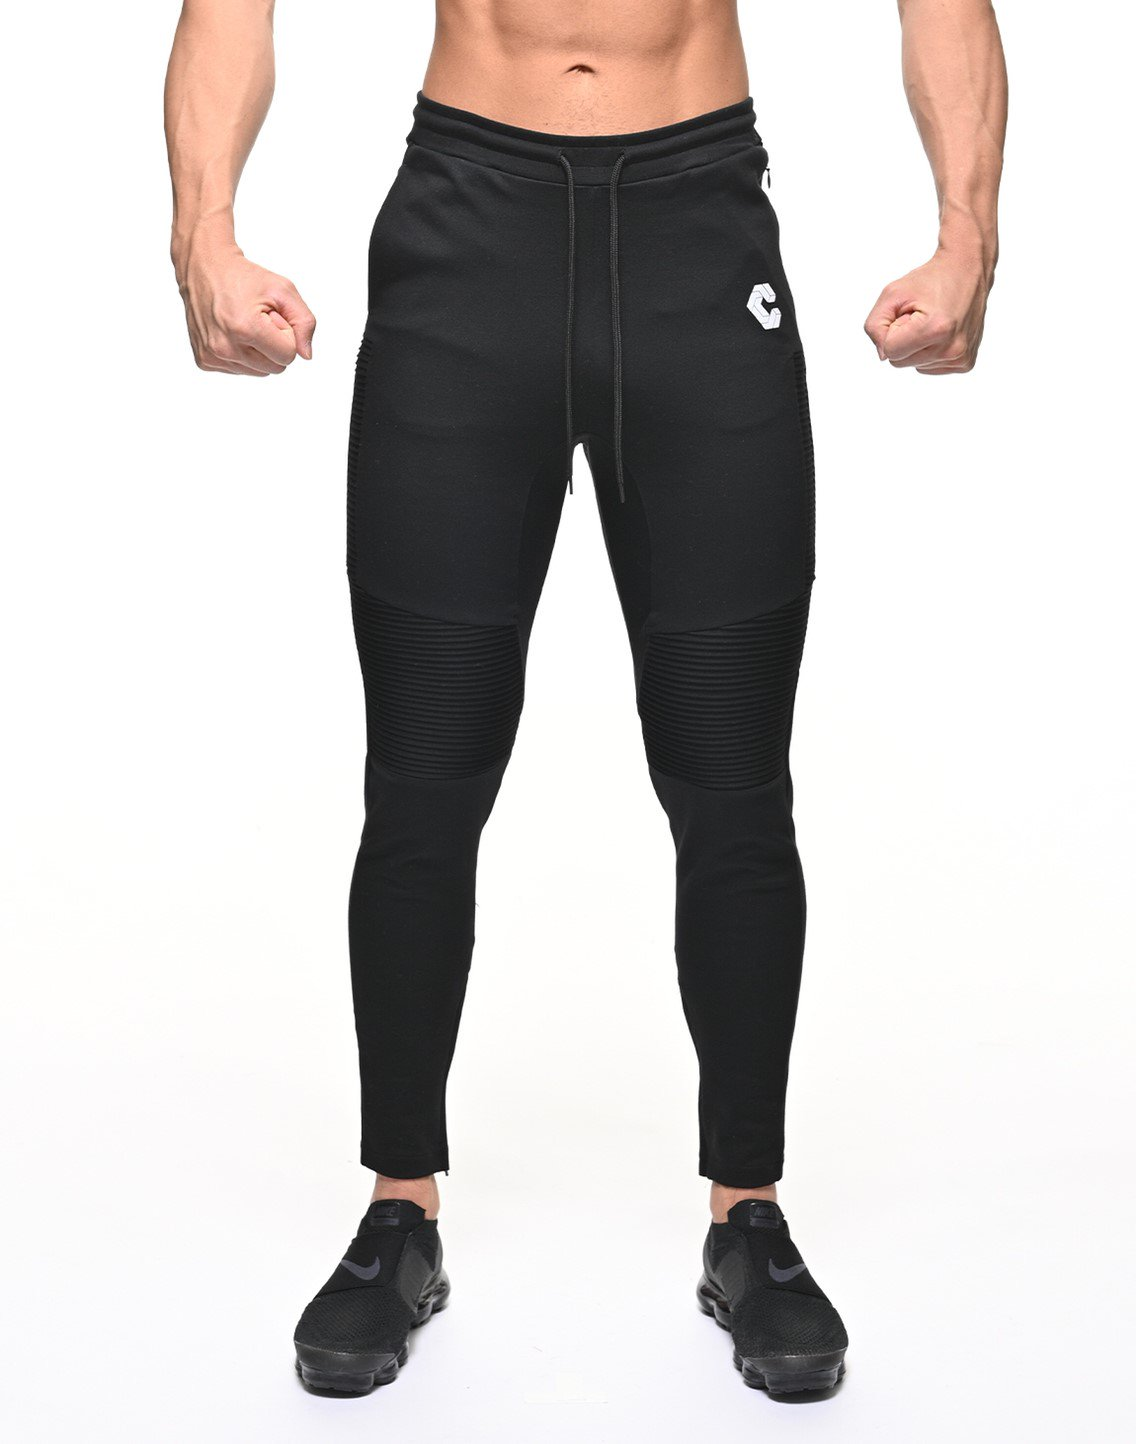 <img class='new_mark_img1' src='https://img.shop-pro.jp/img/new/icons1.gif' style='border:none;display:inline;margin:0px;padding:0px;width:auto;' />CRONOS BIKER PANTS【BLACK】